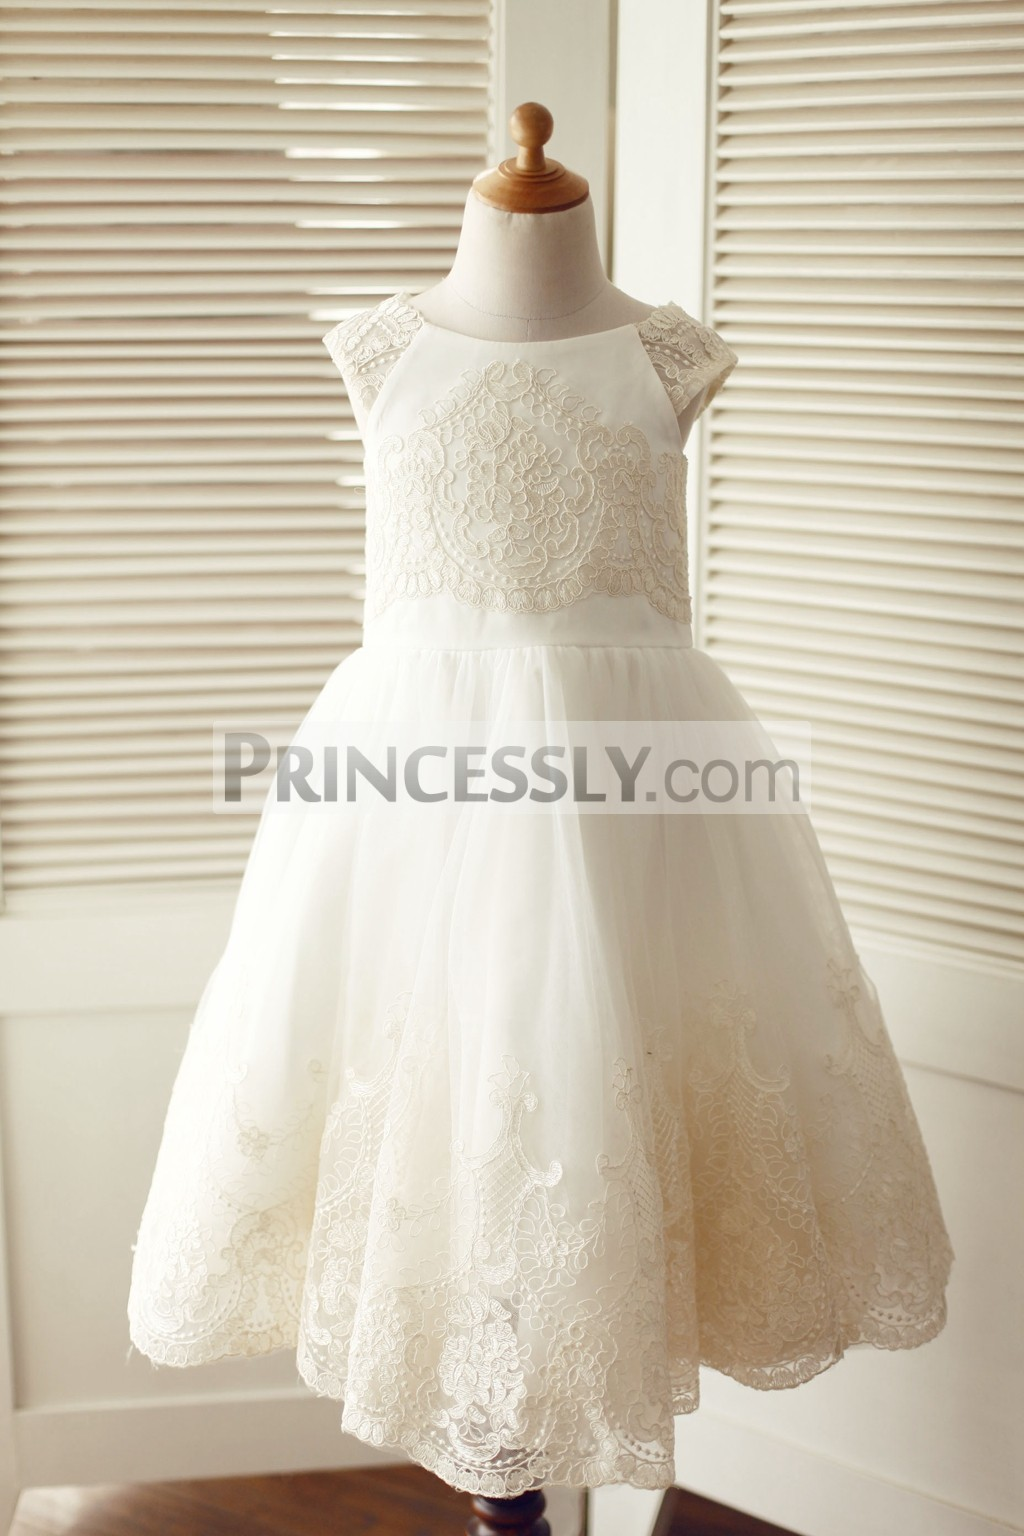 e8d246da5db Cap Sleeves Champagne Lace Ivory Tulle Wedding Flower Girl Dress ...